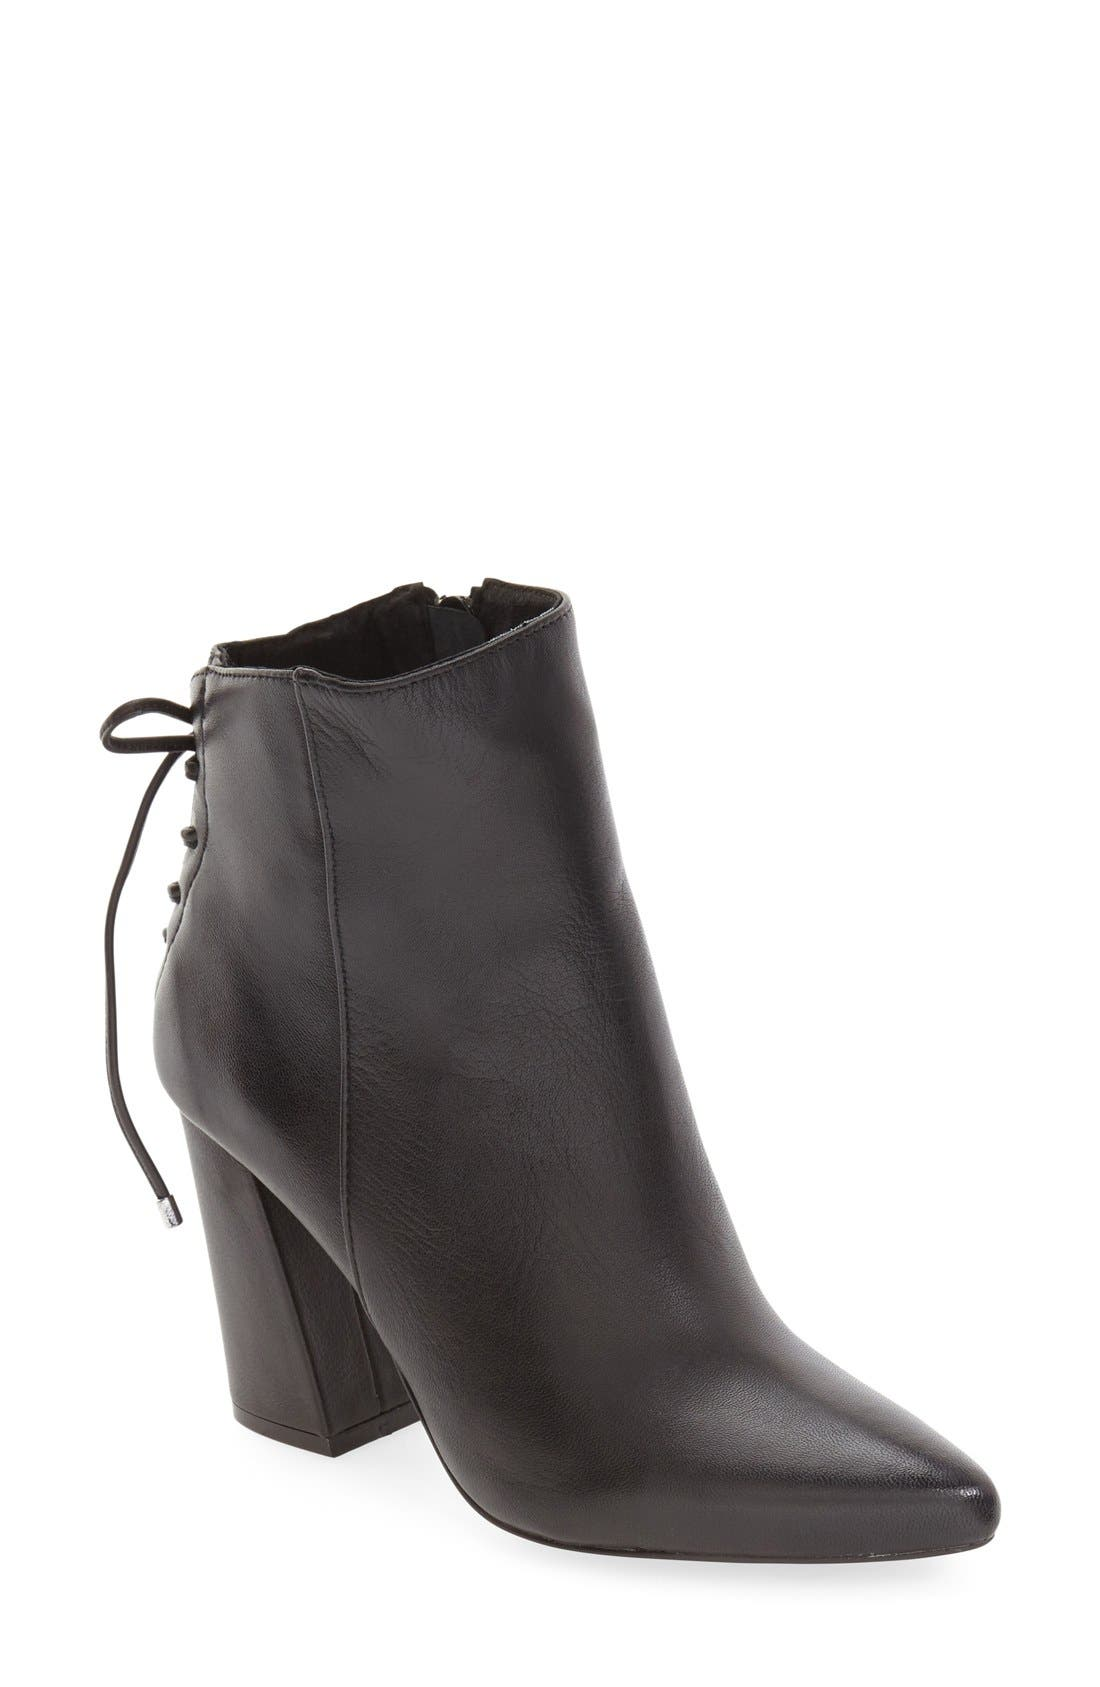 'Siren' Pointy Toe Bootie,                             Main thumbnail 1, color,                             001